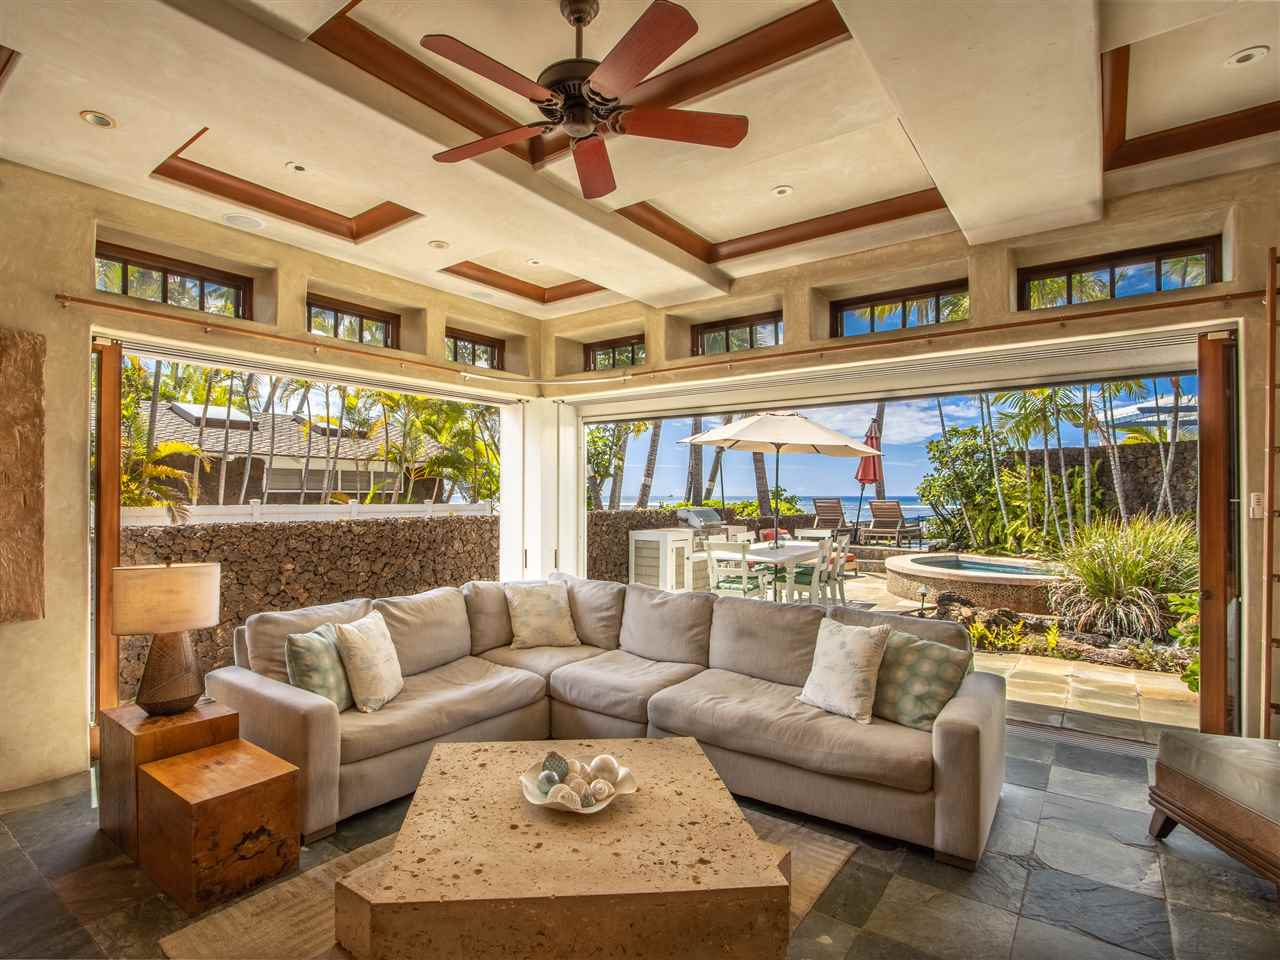 $6,950,000 - 4Br/4Ba -  for Sale in Lahaina